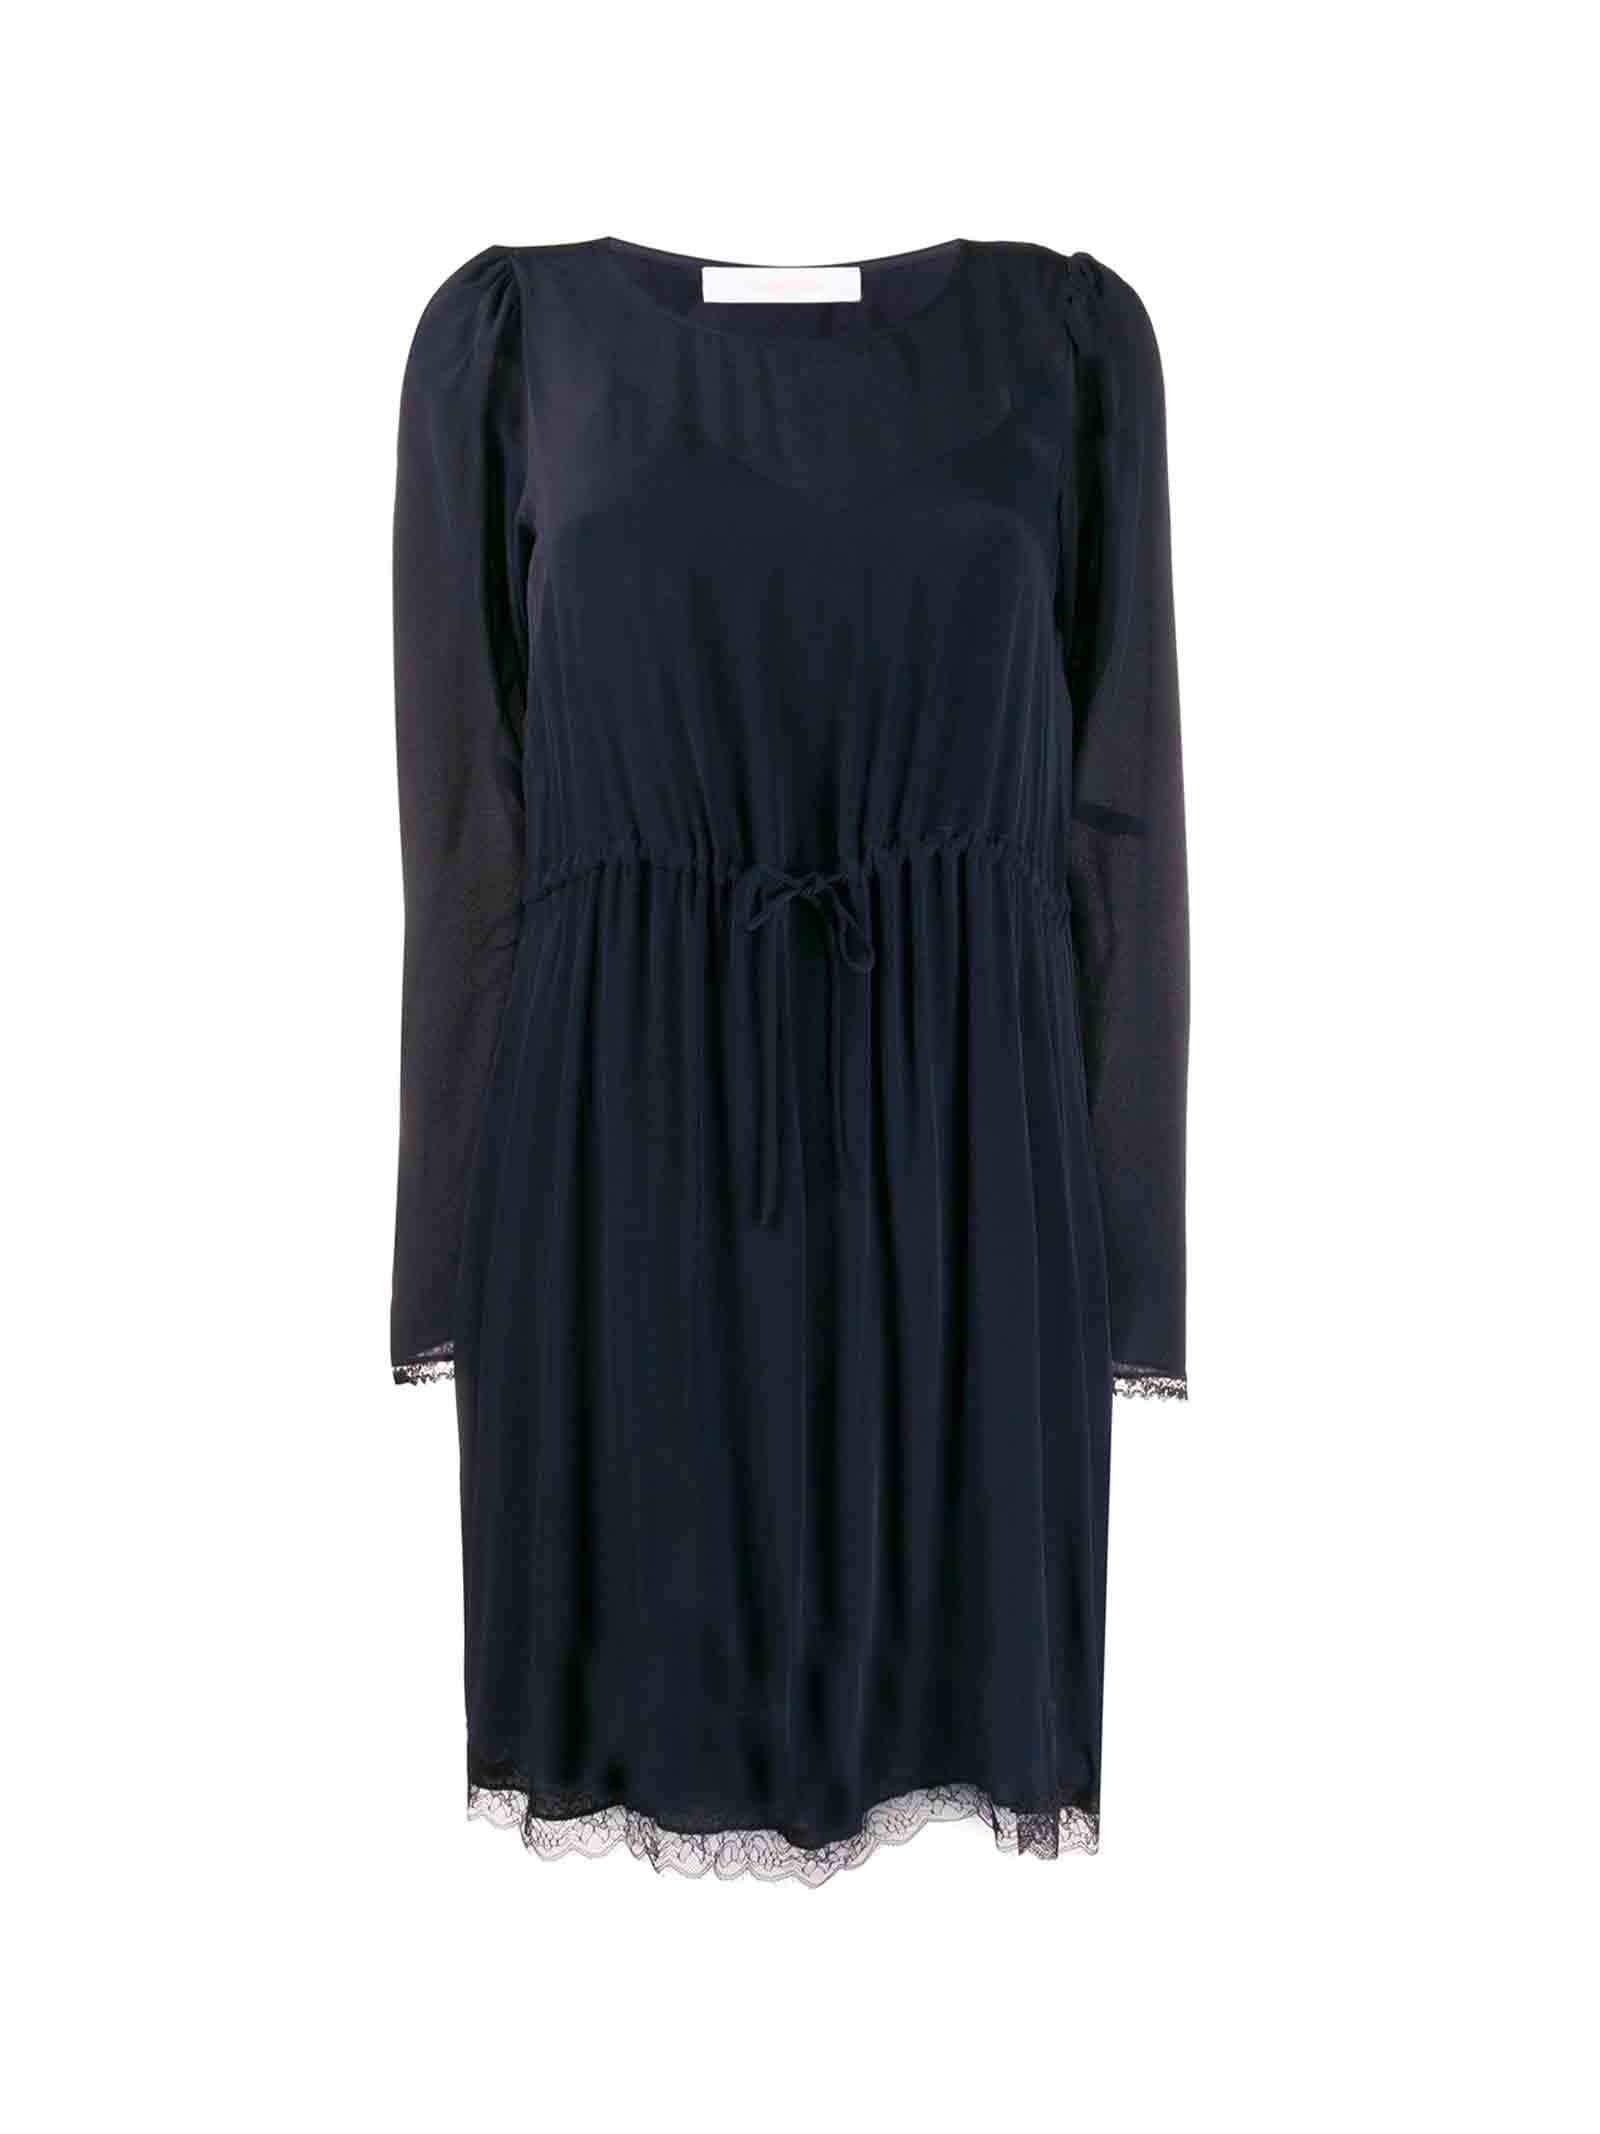 Buy See by Chloé See By Chloé Long-sleeve Shift Dress online, shop See by Chloé with free shipping